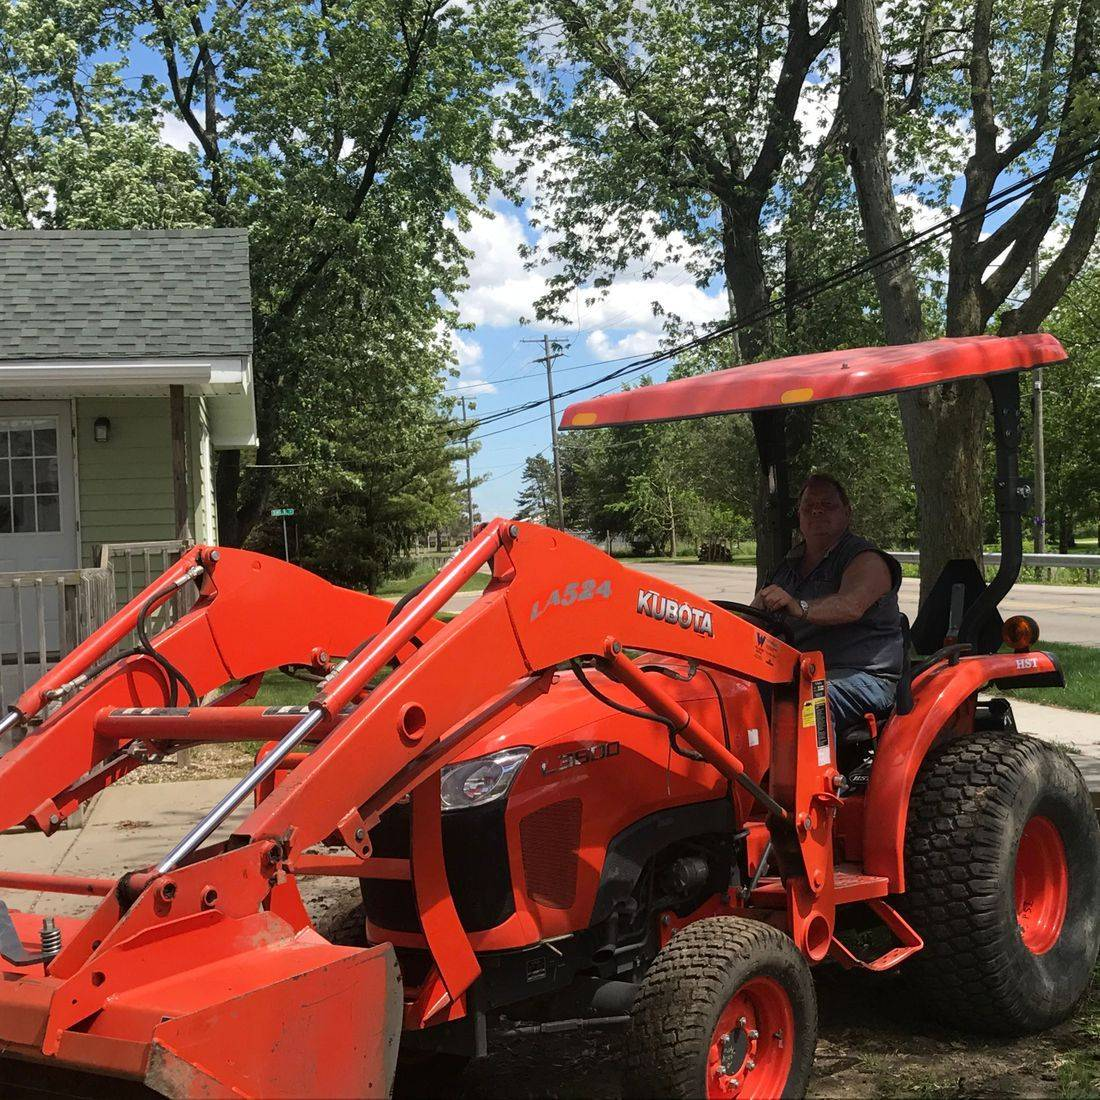 Property and landscape maintenance, property drainage, new construction clean up, lawn and garden restoration, organic top soil, sod installation, hydroseeding, drill seeding, broadcast seeding, seasonal services, professional, experience, ann arbor, Washtenaw county